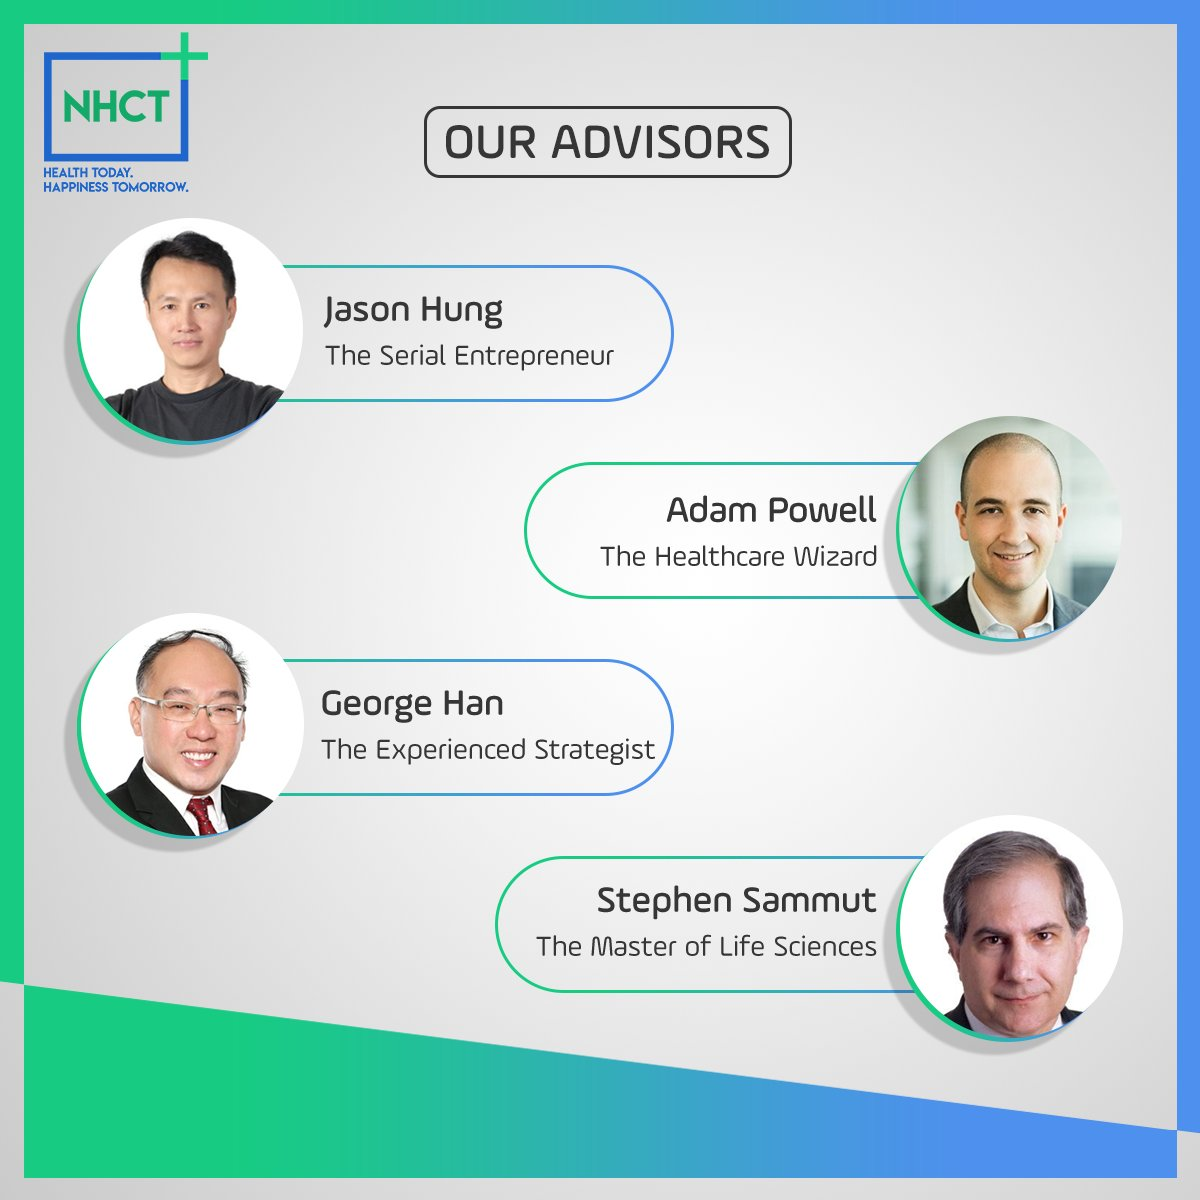 Meet the second set of our advisors who are guiding NHCT on the road to success. #blockchain #crypto #tokens #nhct #nanohealth #ethereum #ico #NHCToken #cryptocurrency #cryptolife #gym<br>http://pic.twitter.com/HC317zaz9x